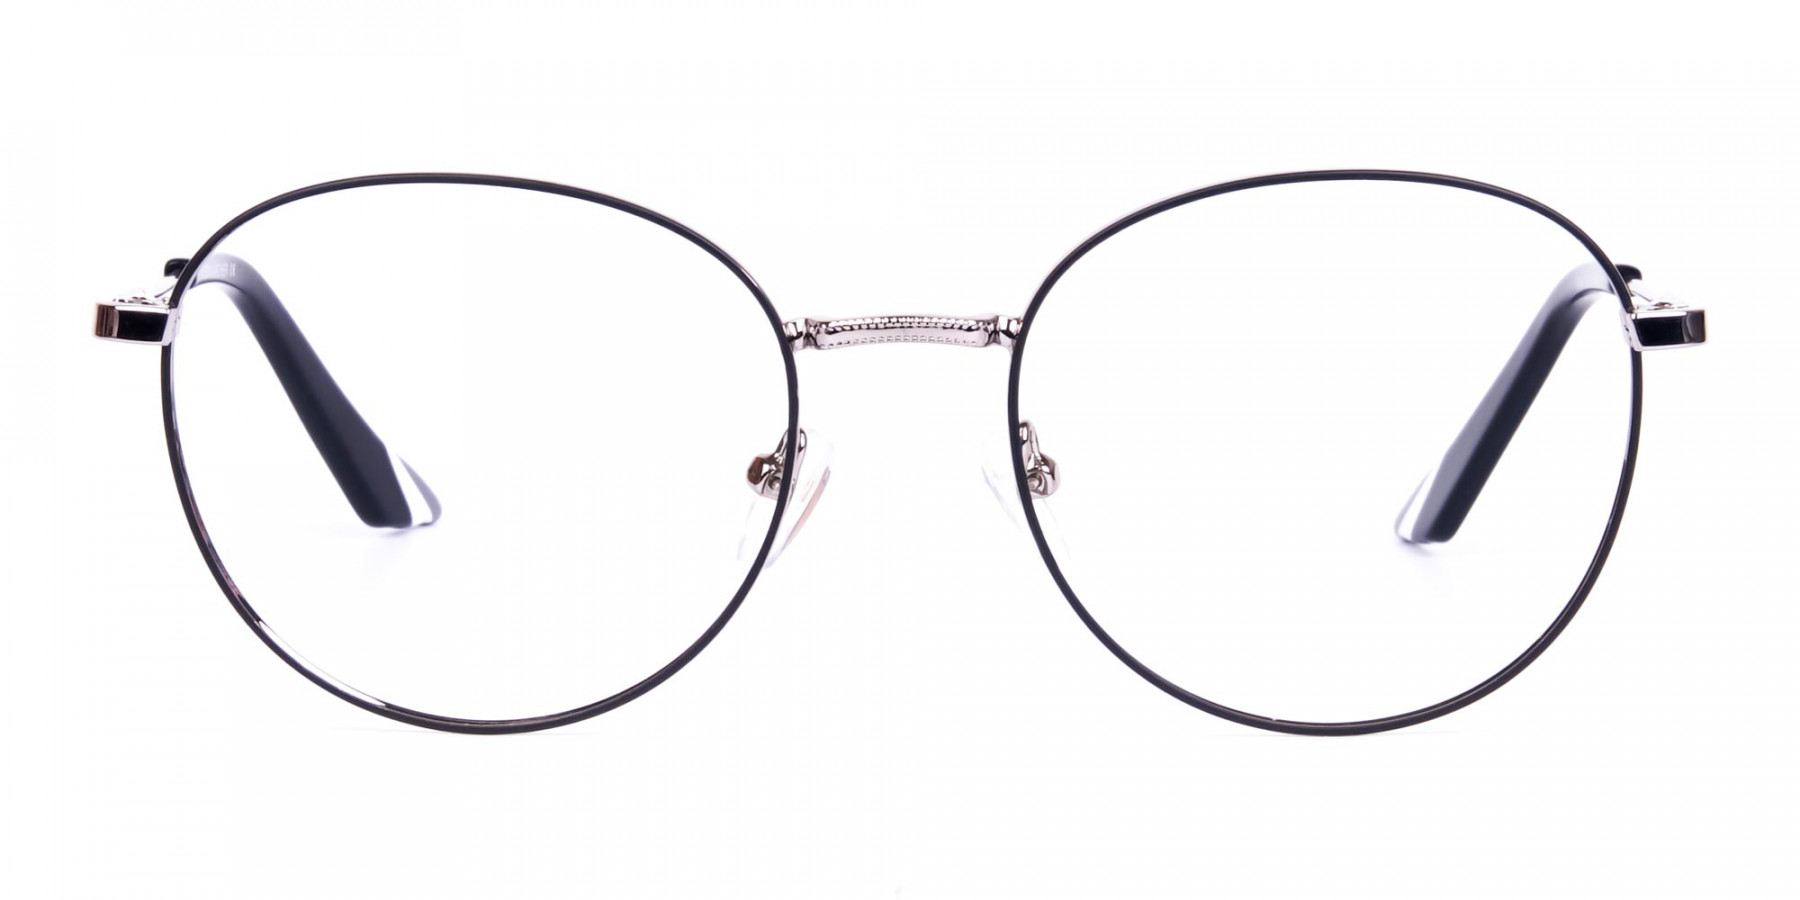 Classic-Black-and-Silver-Round-Glasses-1